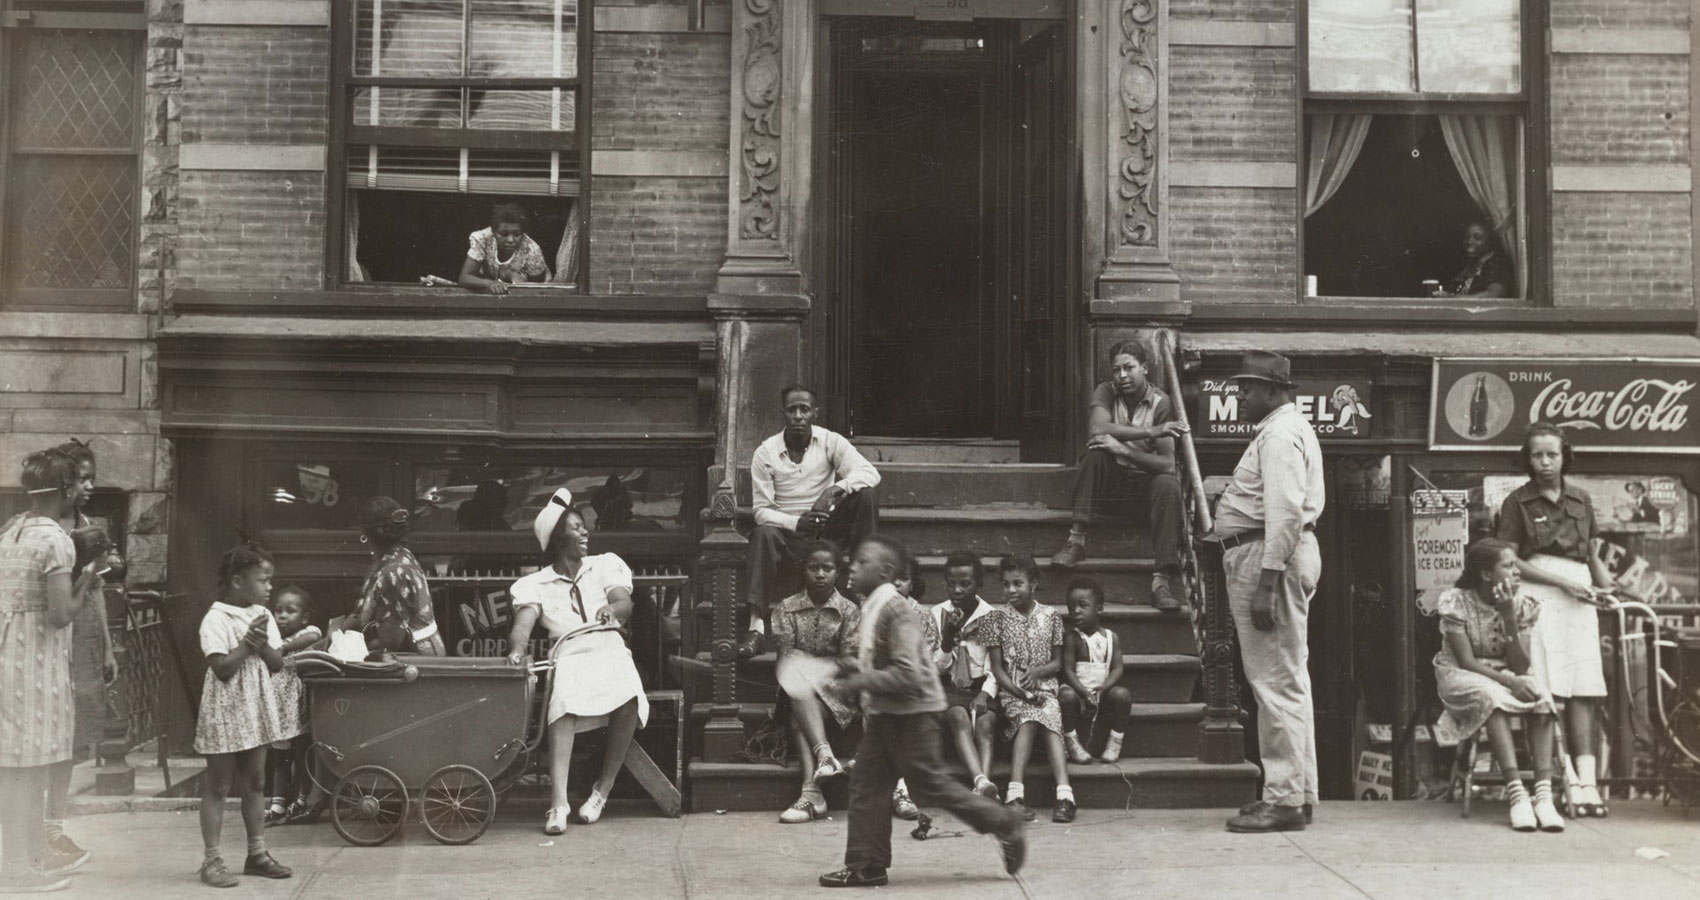 Harlem, a poem written by Langston Hughes at Spillwords.com